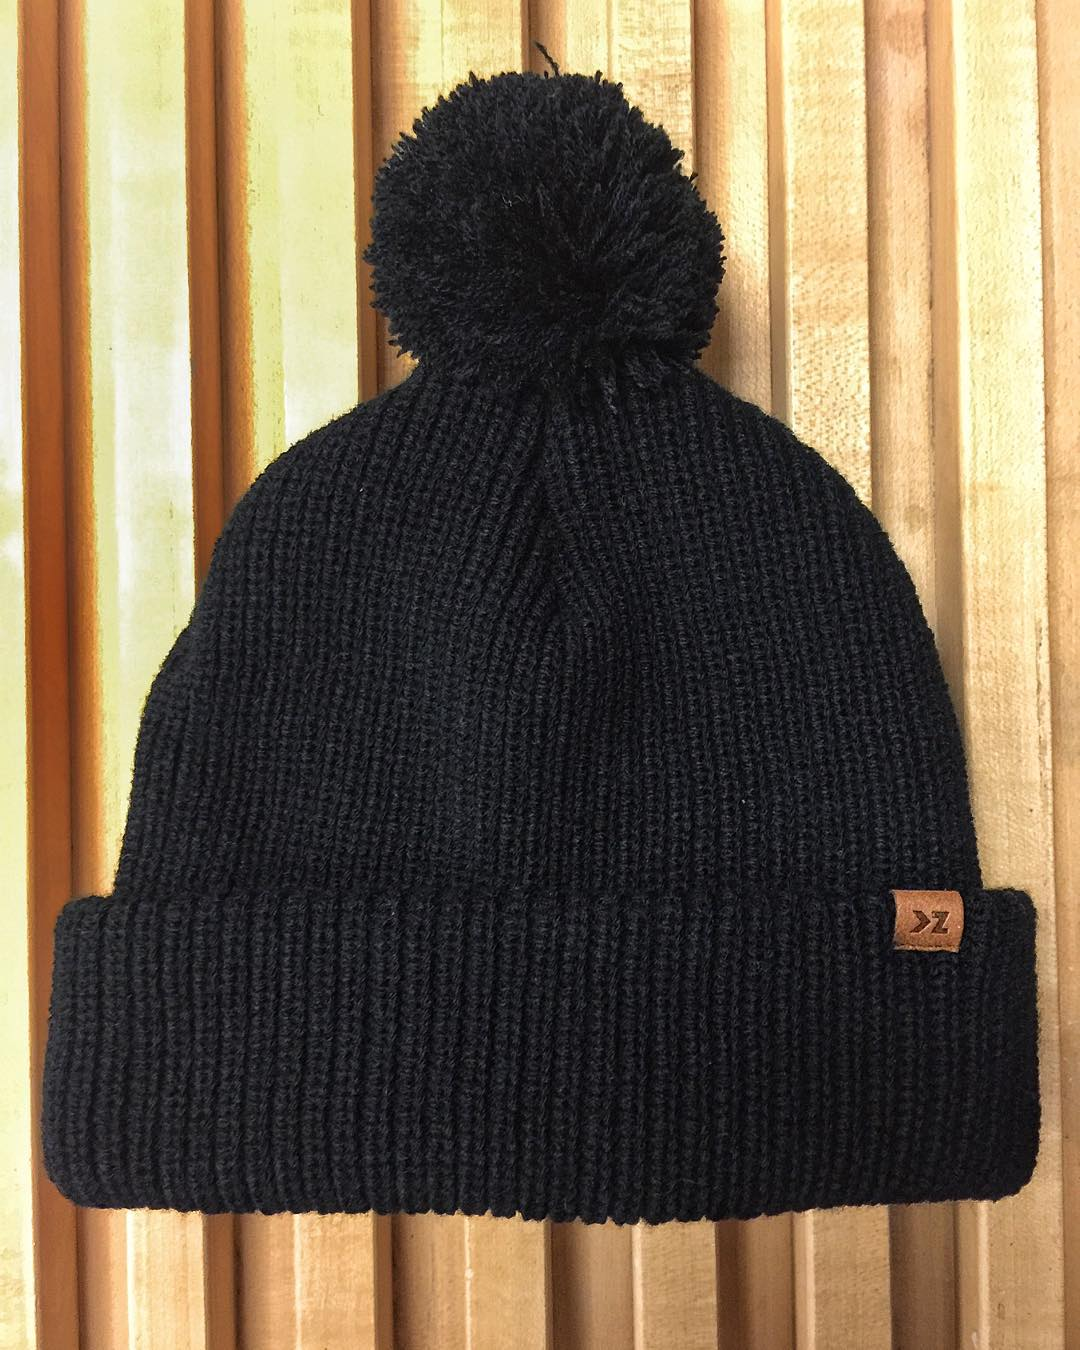 Check out one of our two new Lux beanies!! Up on the site now!